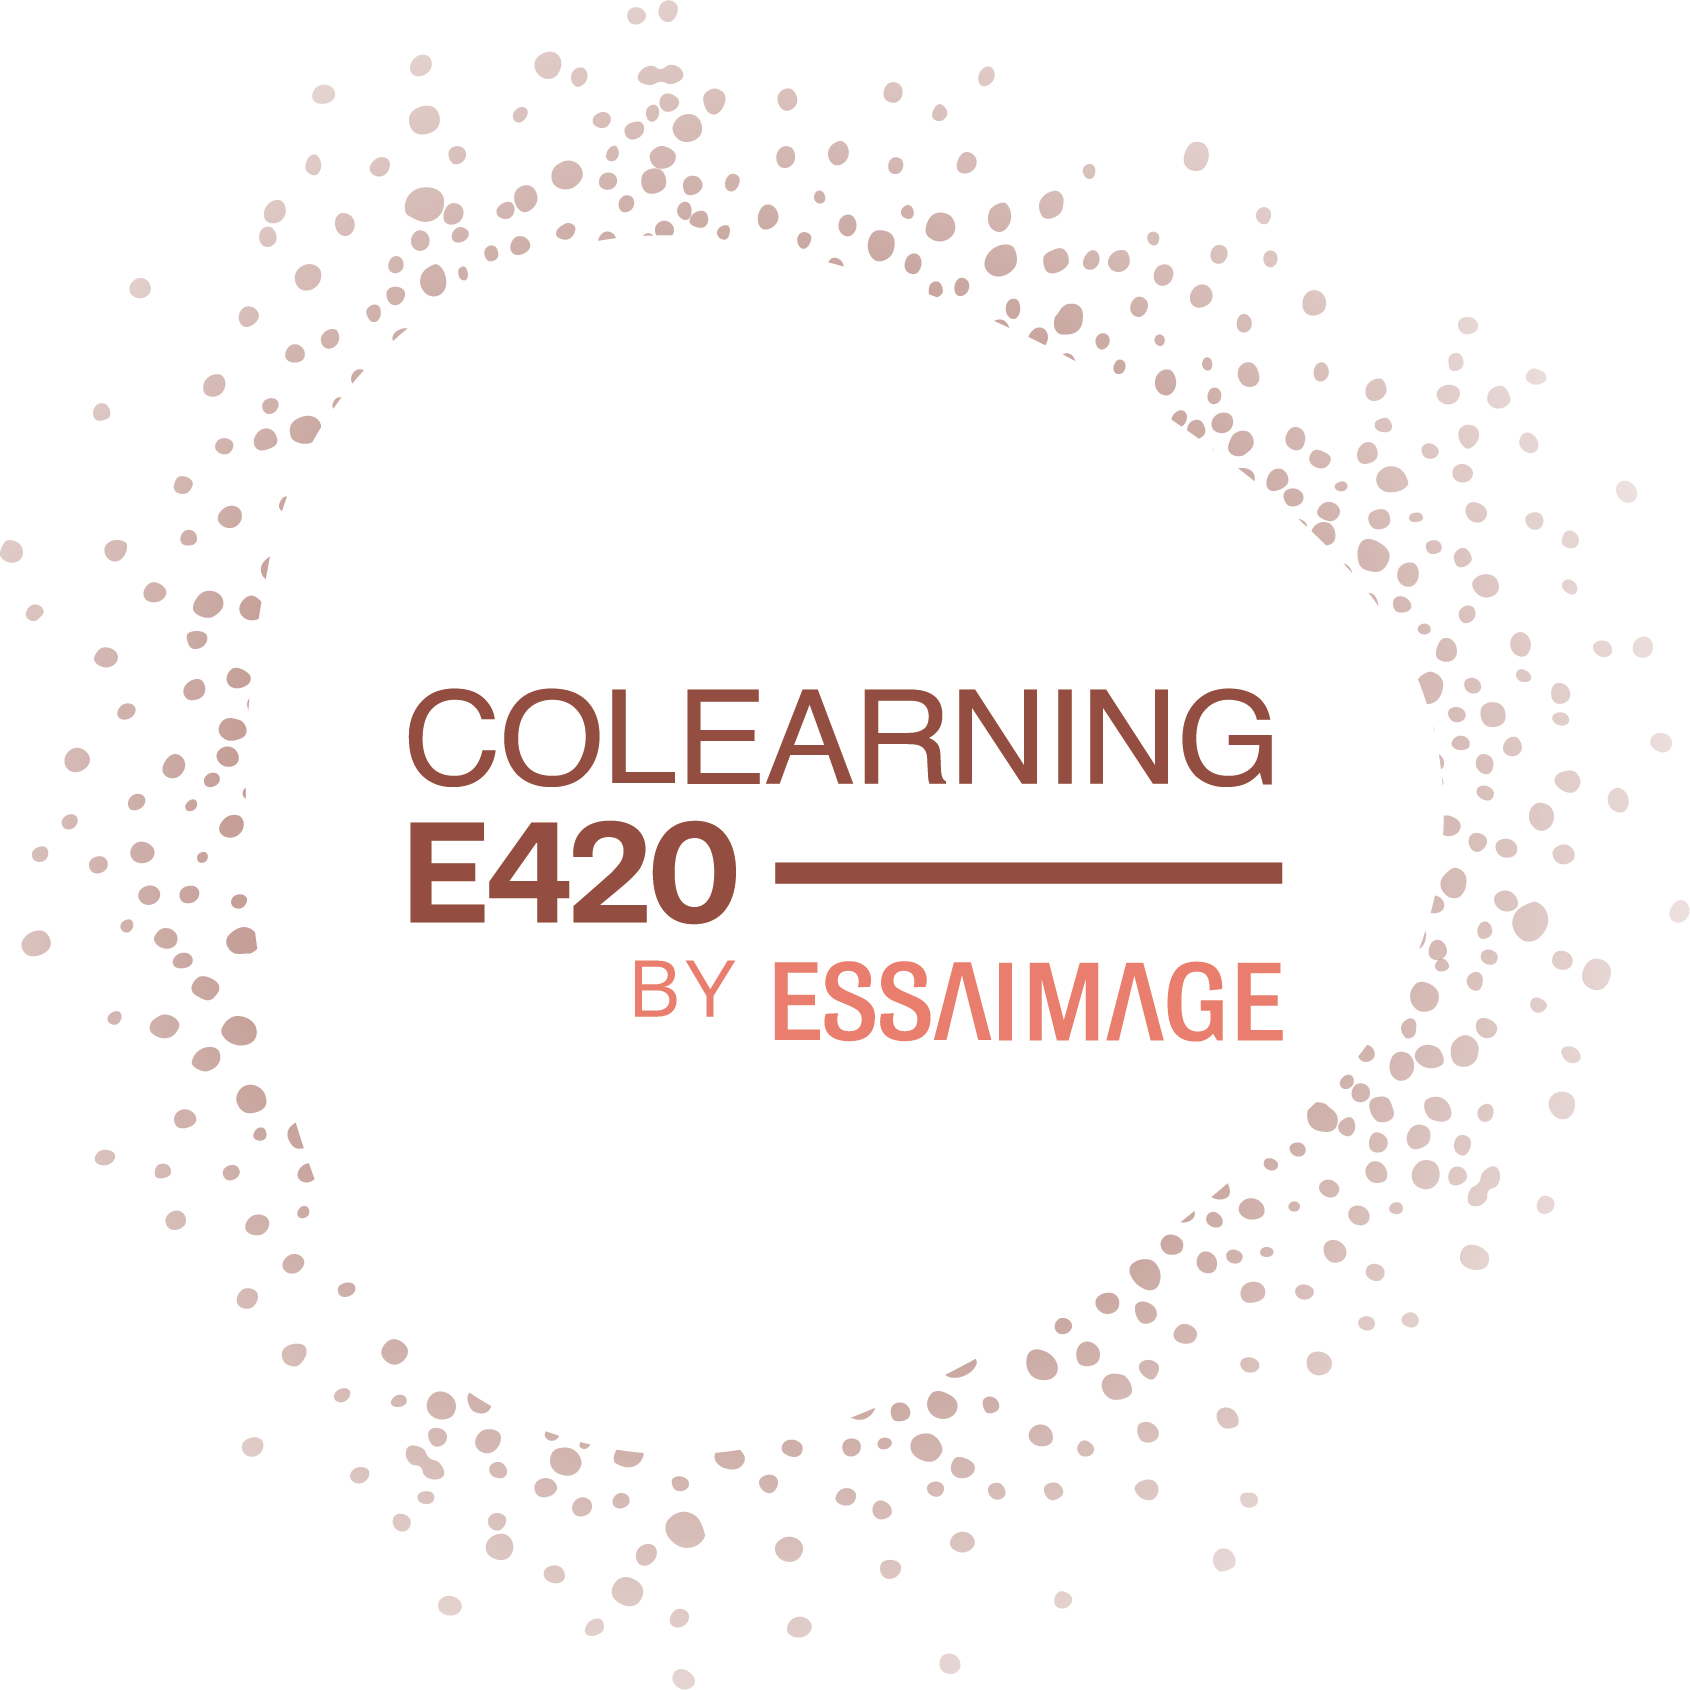 Colearning E420 - by ESSAIMAGE